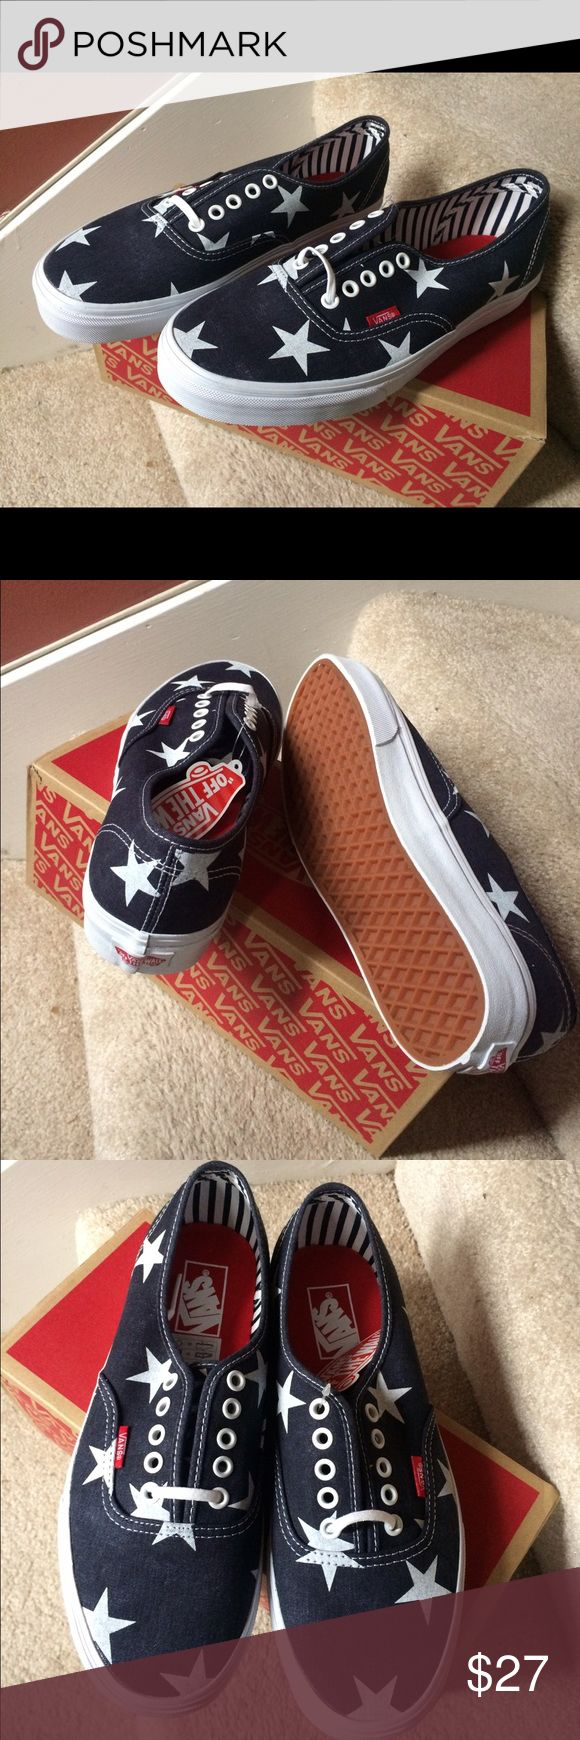 vans authentic oder eragon  56b8d2bbd1